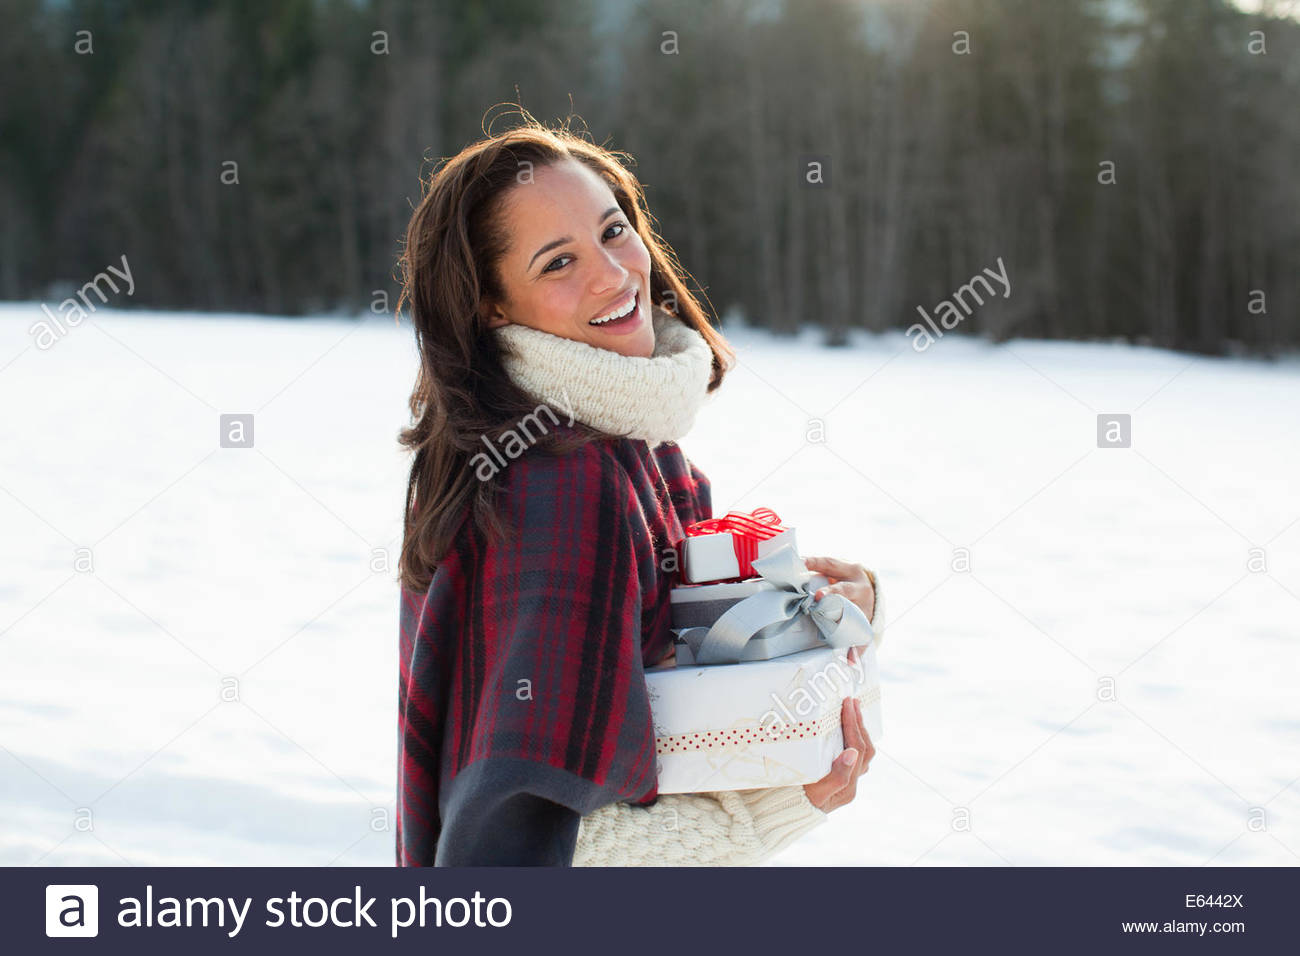 Portrait of smiling woman holding Christmas gifts in snow - Stock Image